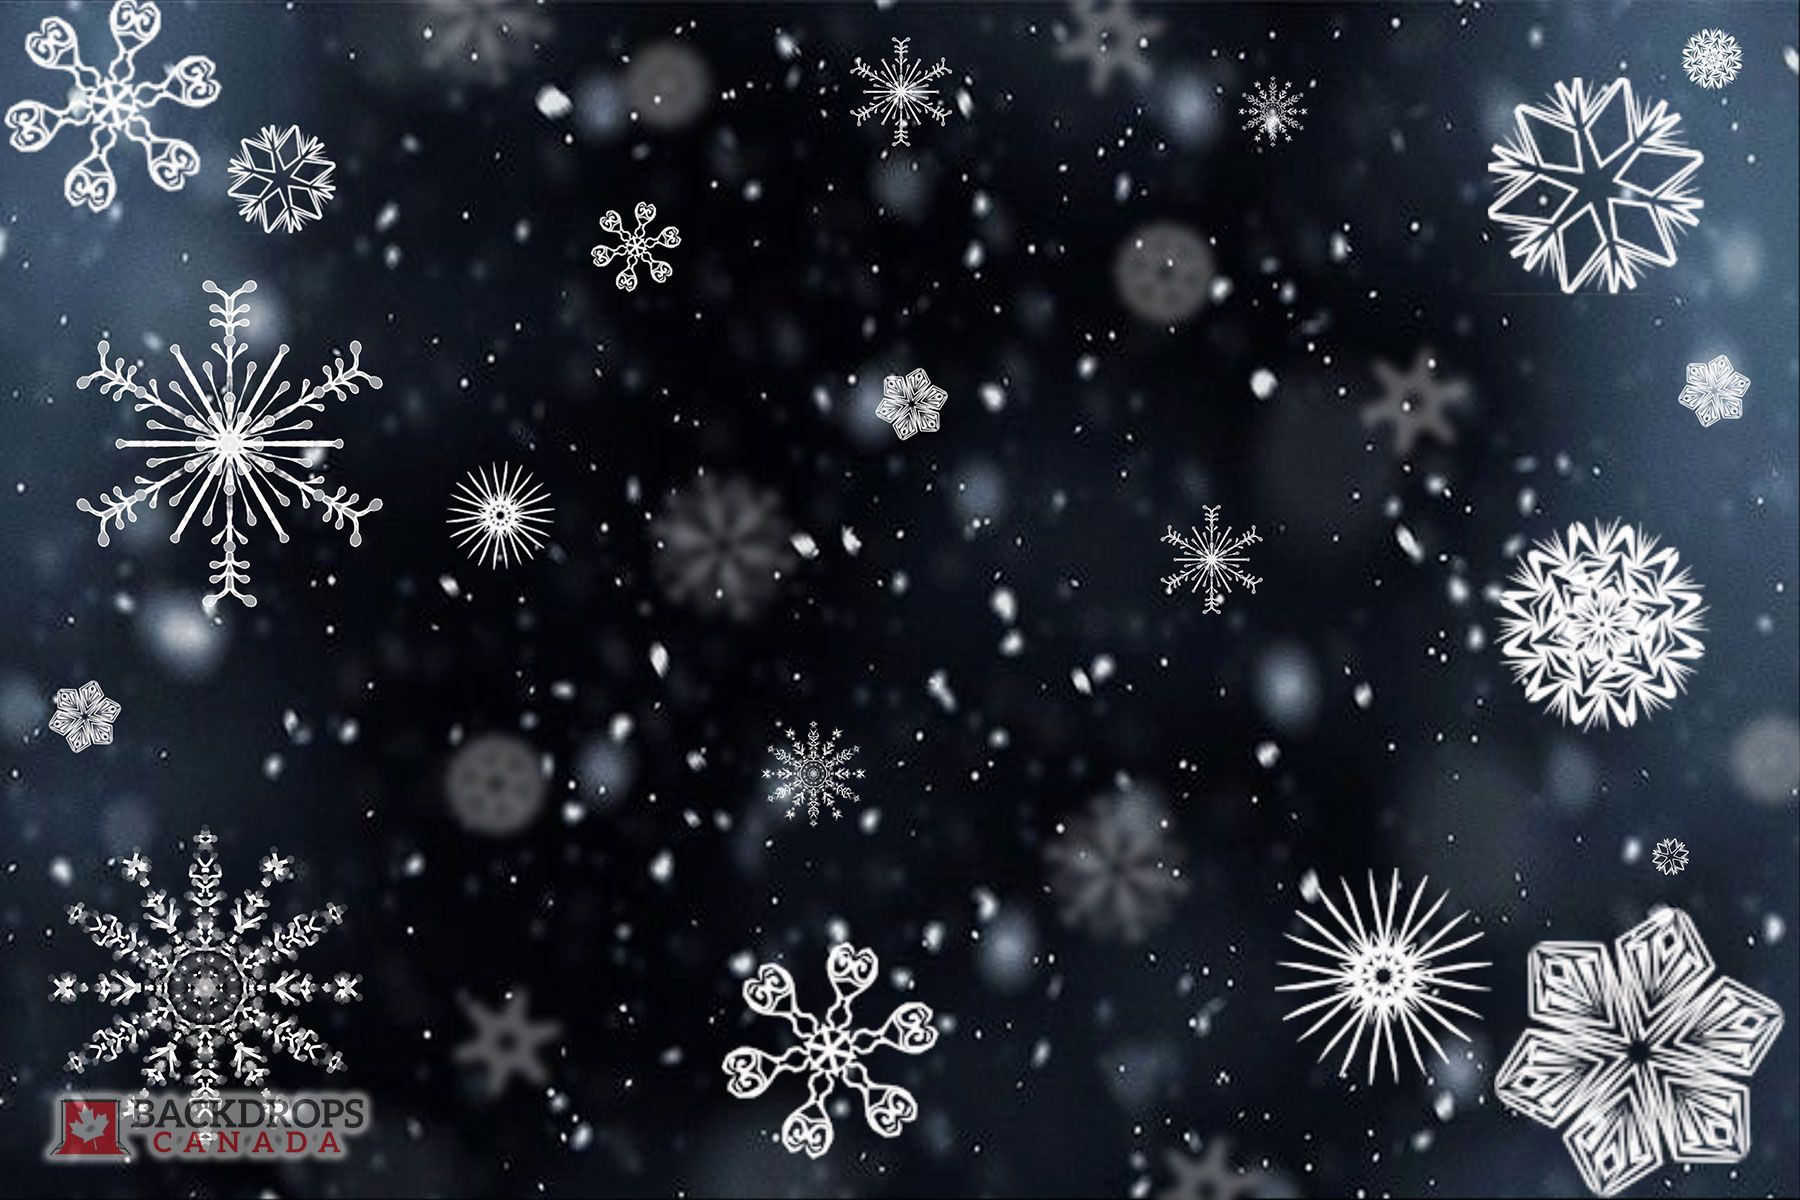 A Multitude Of Falling Snowflakes Makes For A Great Winter